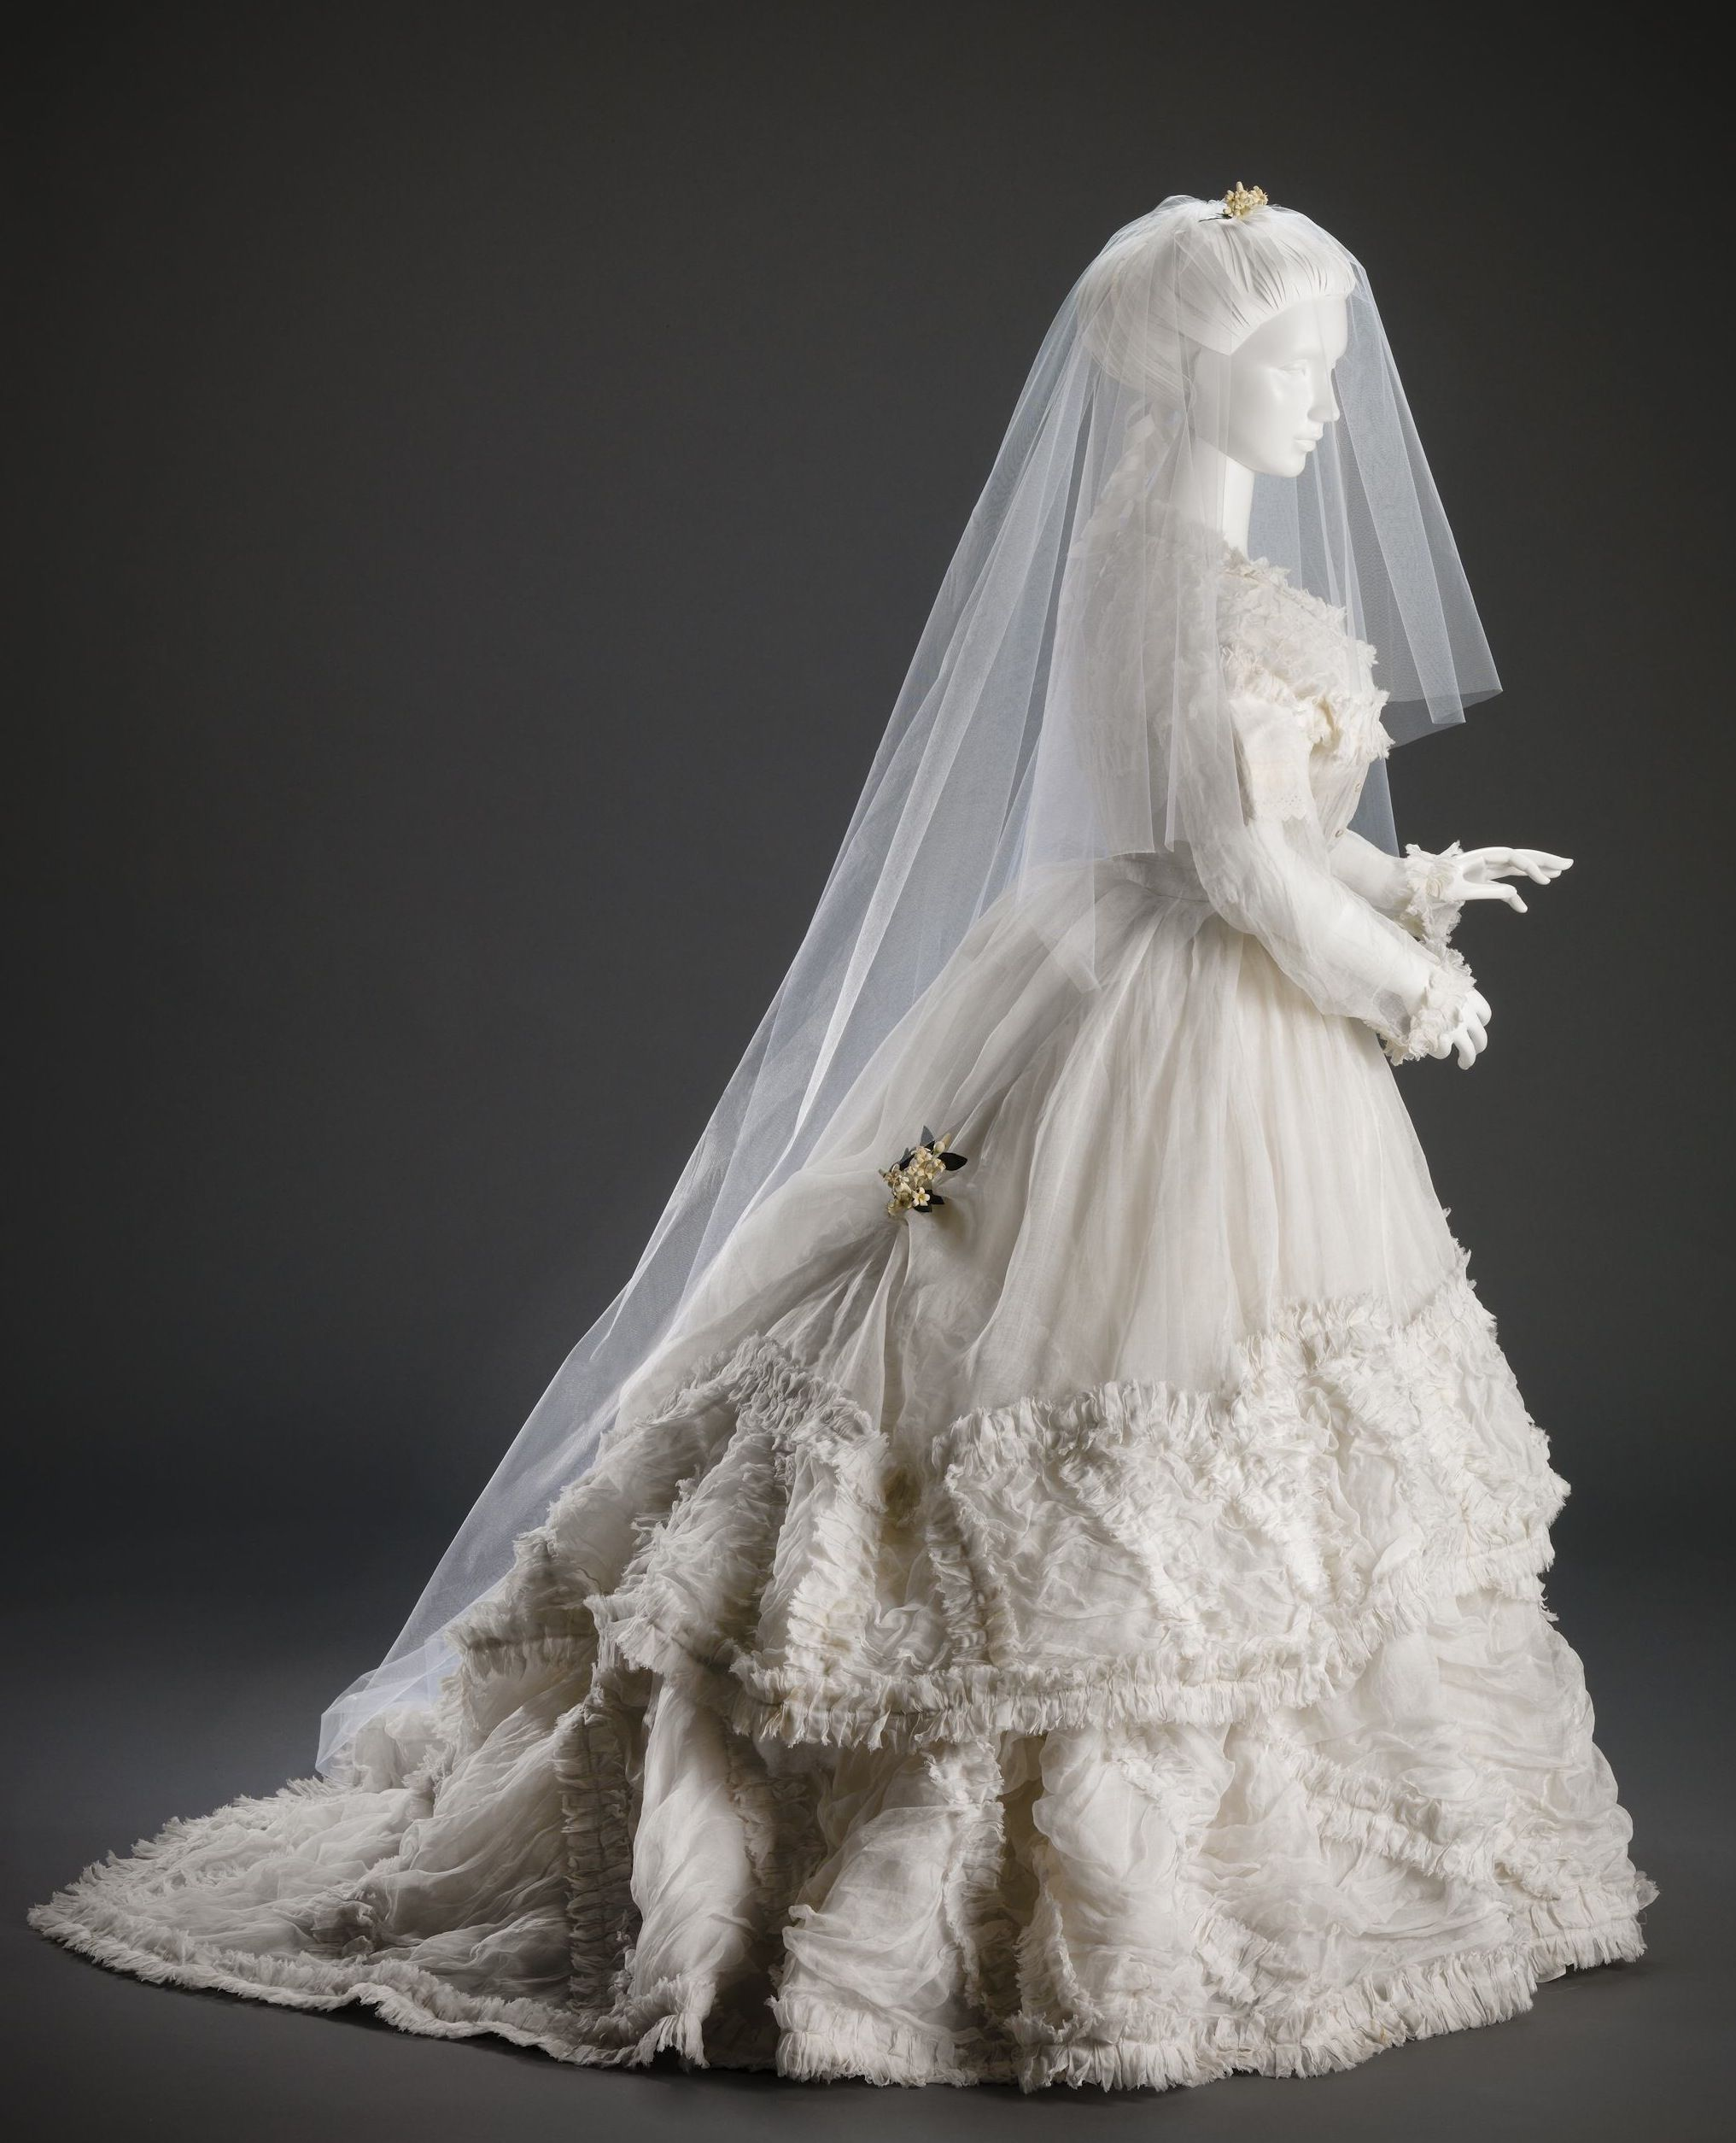 Vintage Wedding Dresses Cincinnati : The intriguing history of wedding gowns museum art and